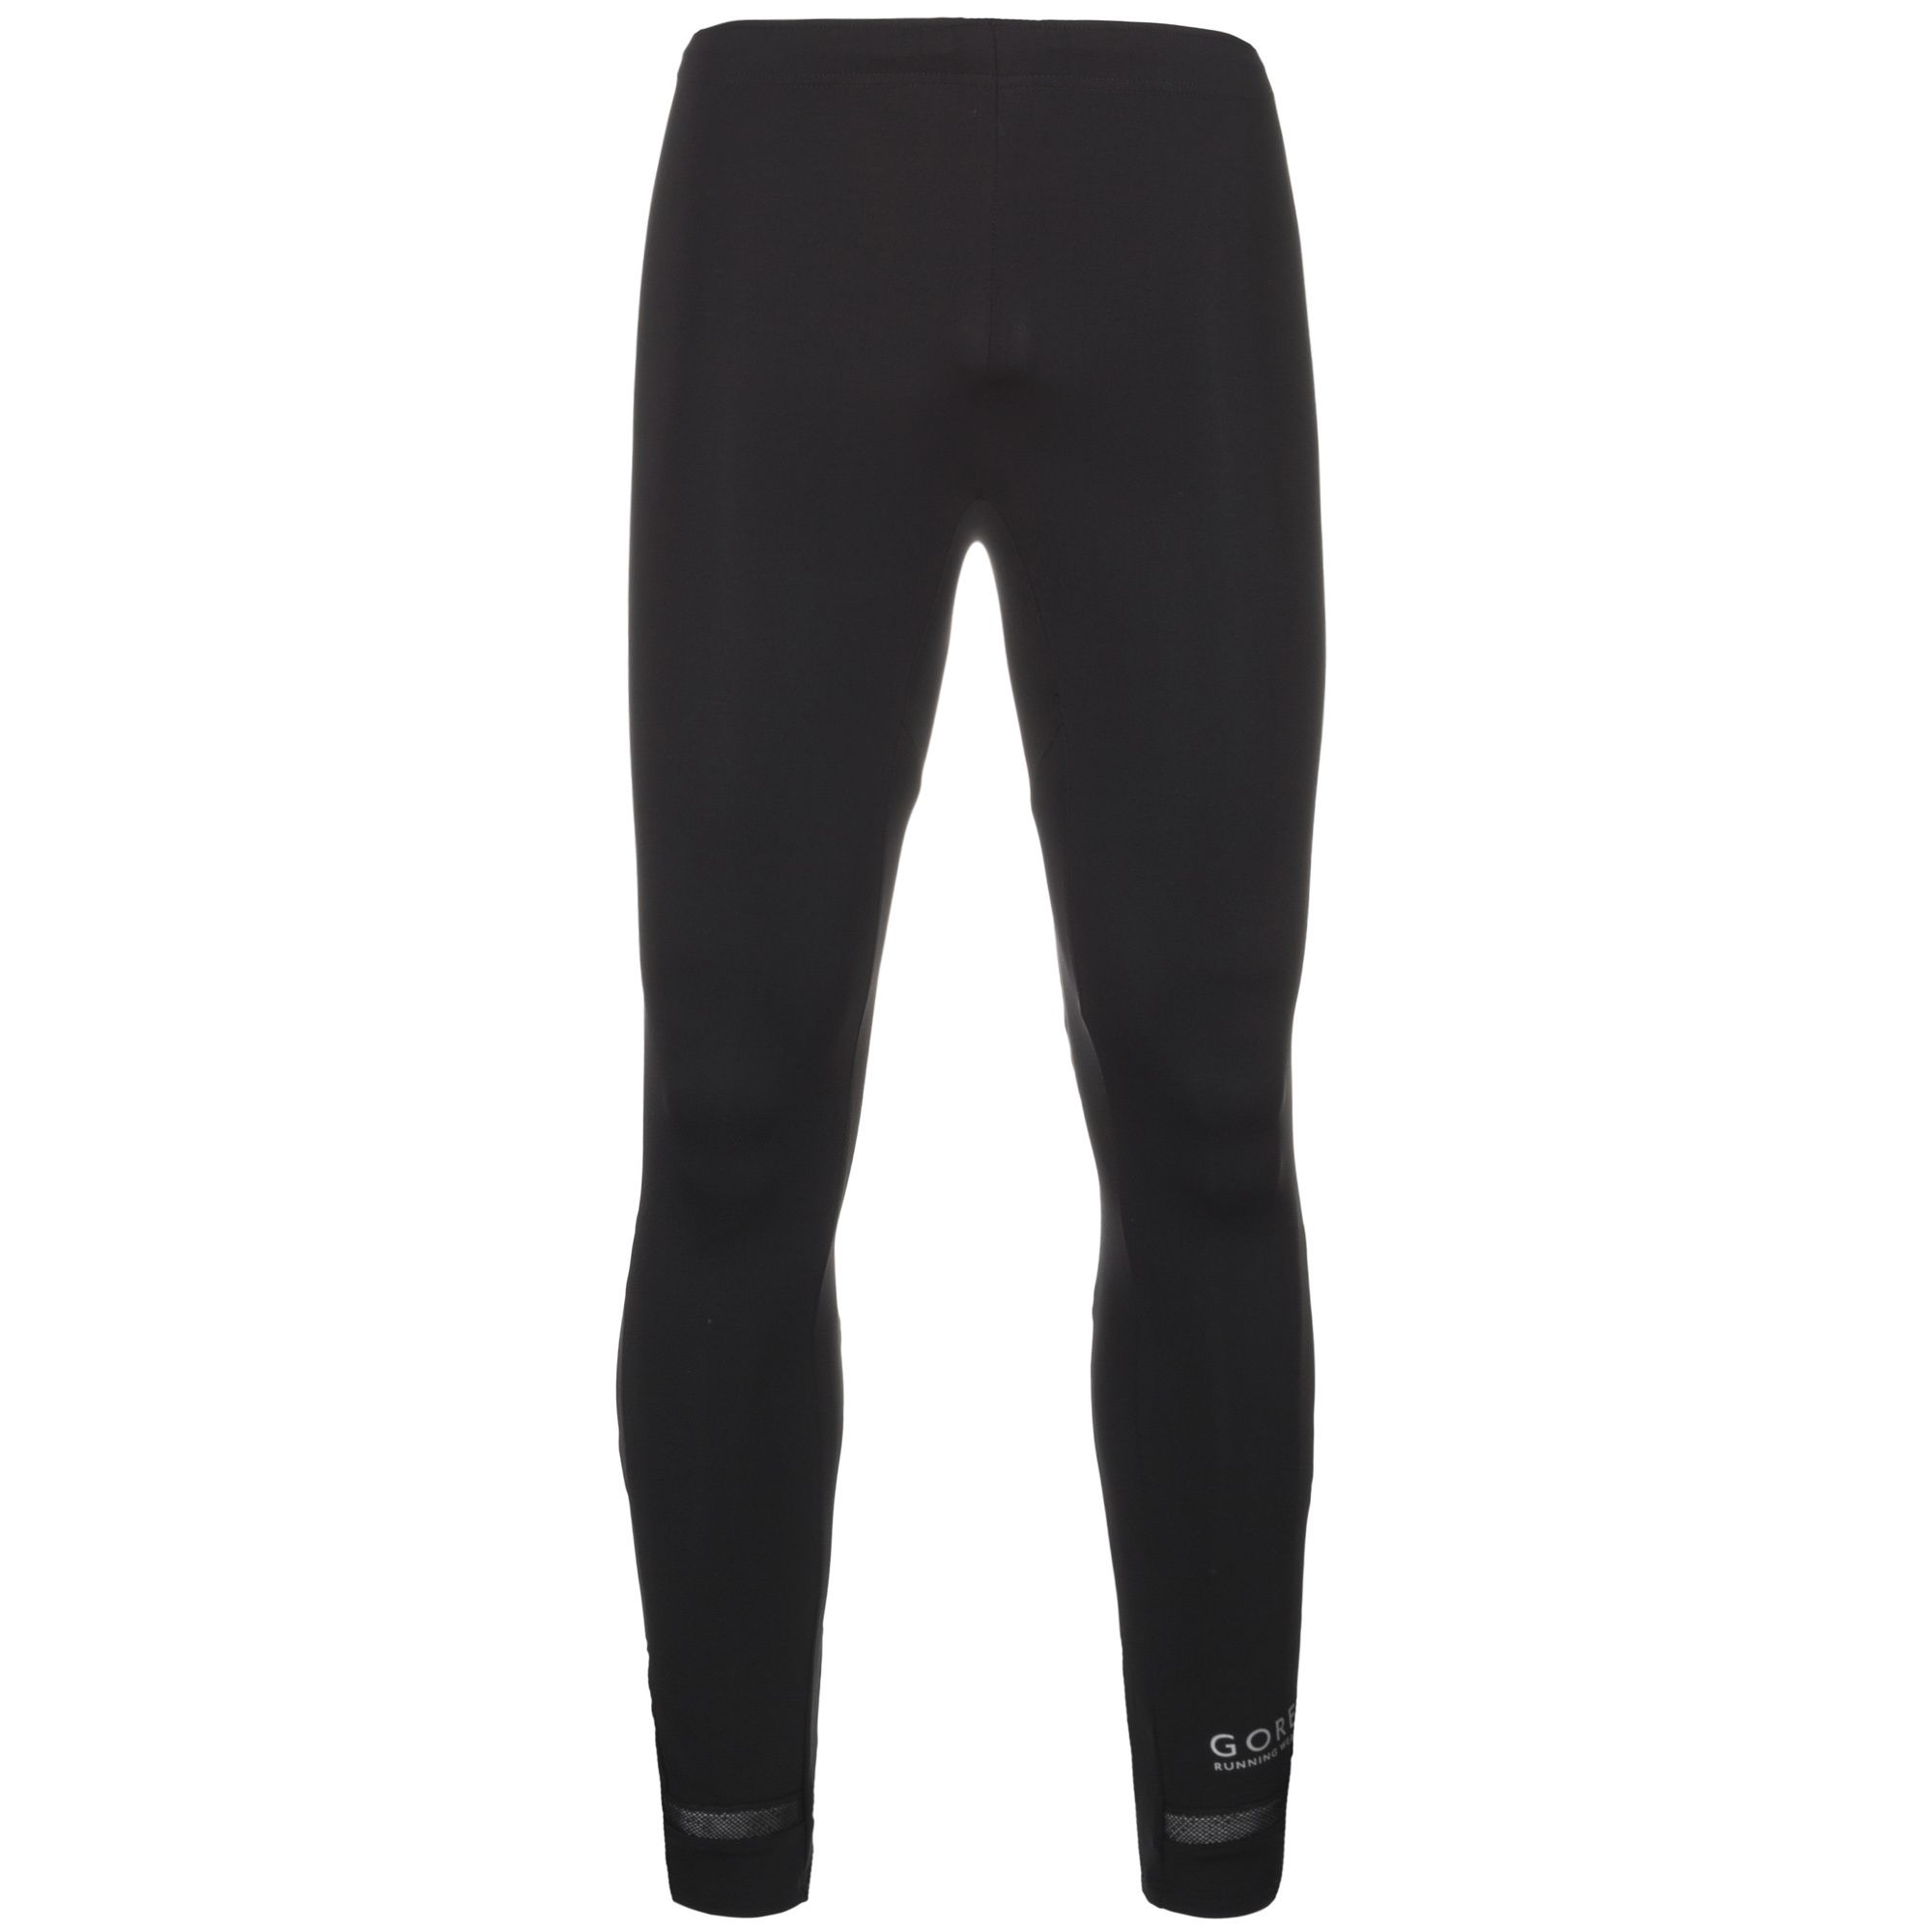 GORE  Air Lauftight Herren